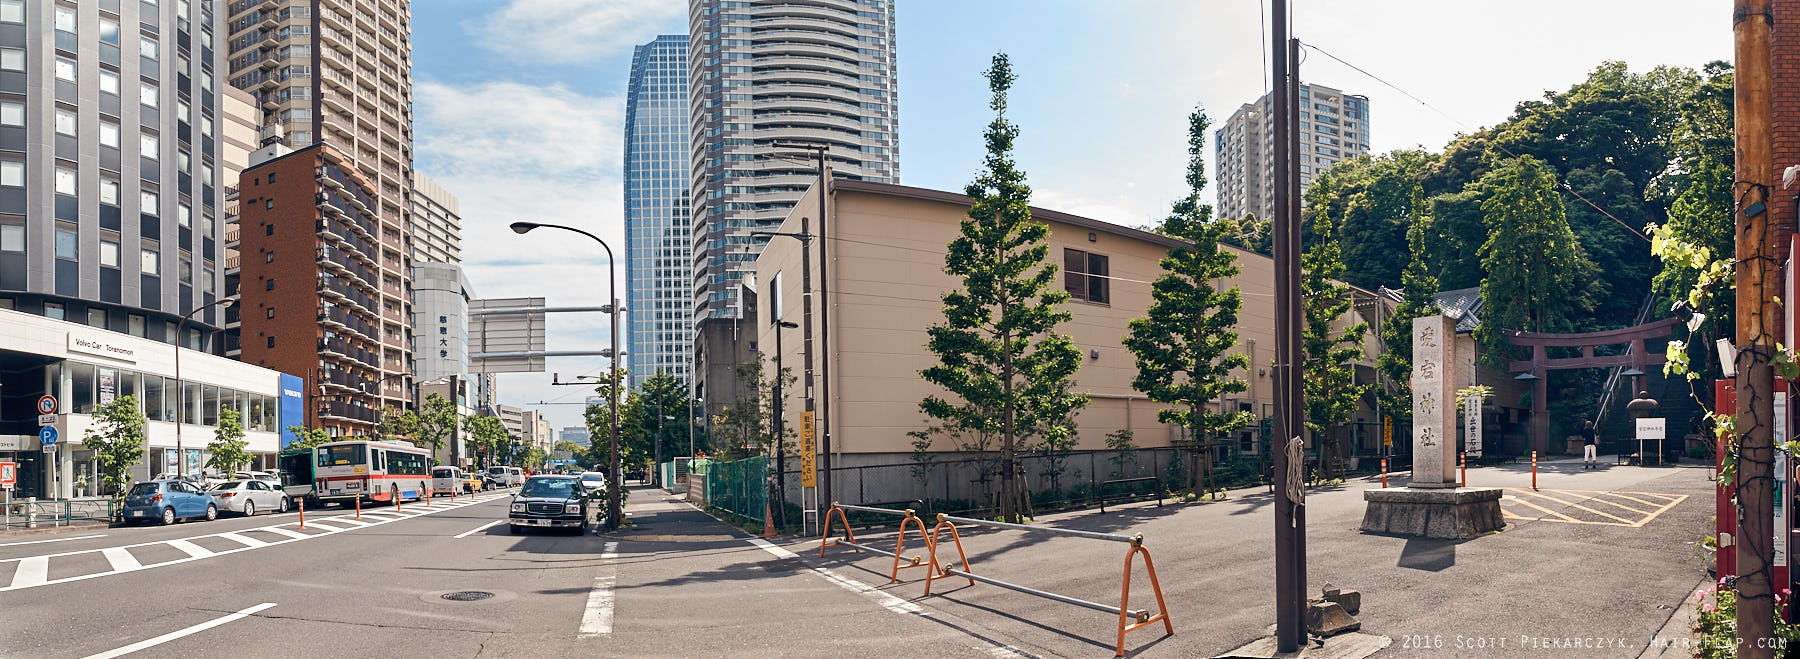 15-05-07.TokyoRevisited._1120178-Pano